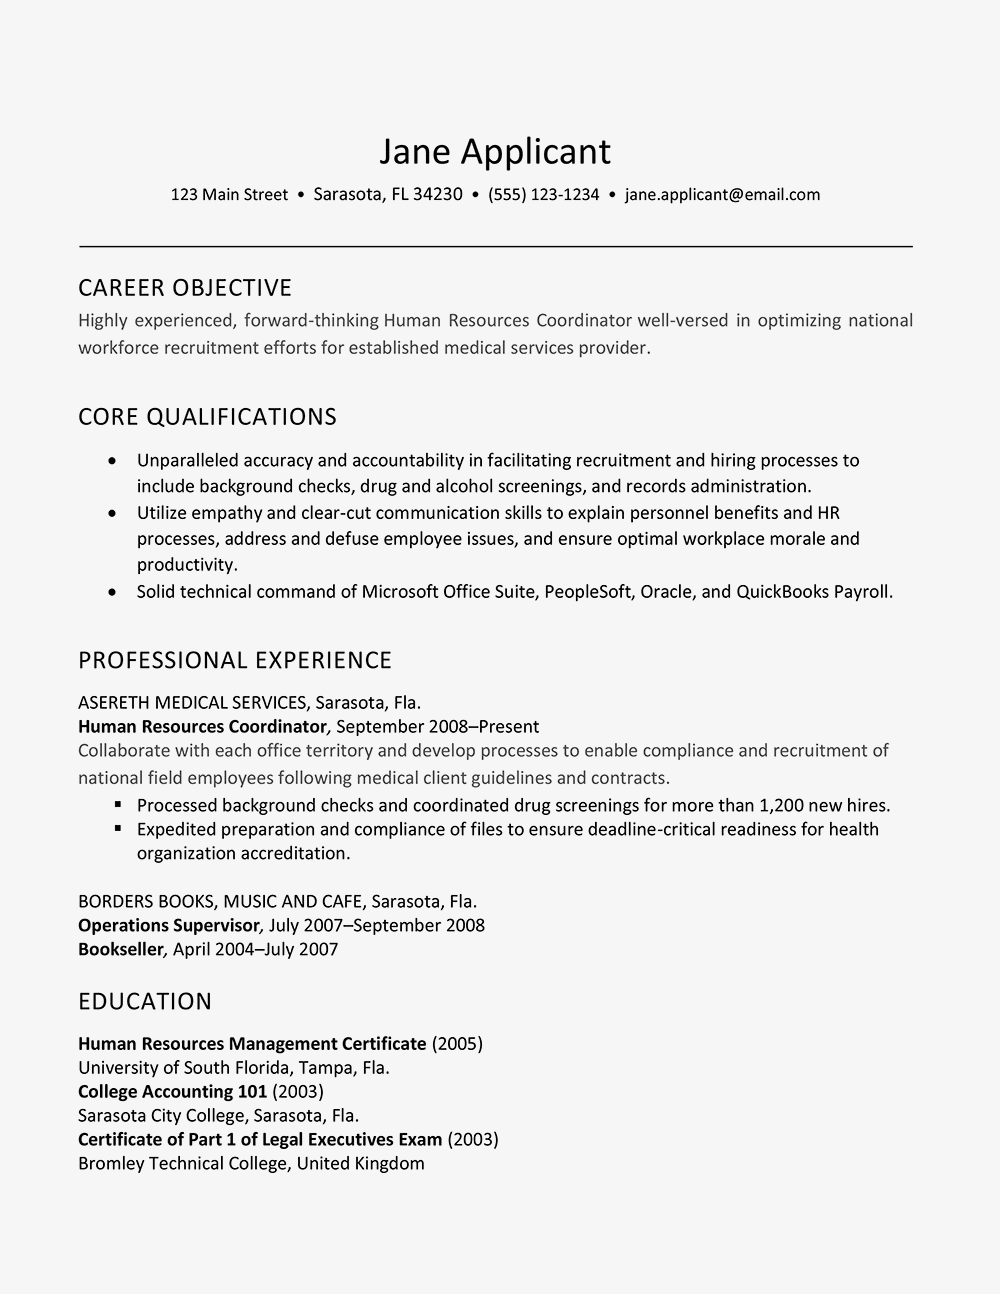 Human Resources Career Objective Resume Example And Writing Tips